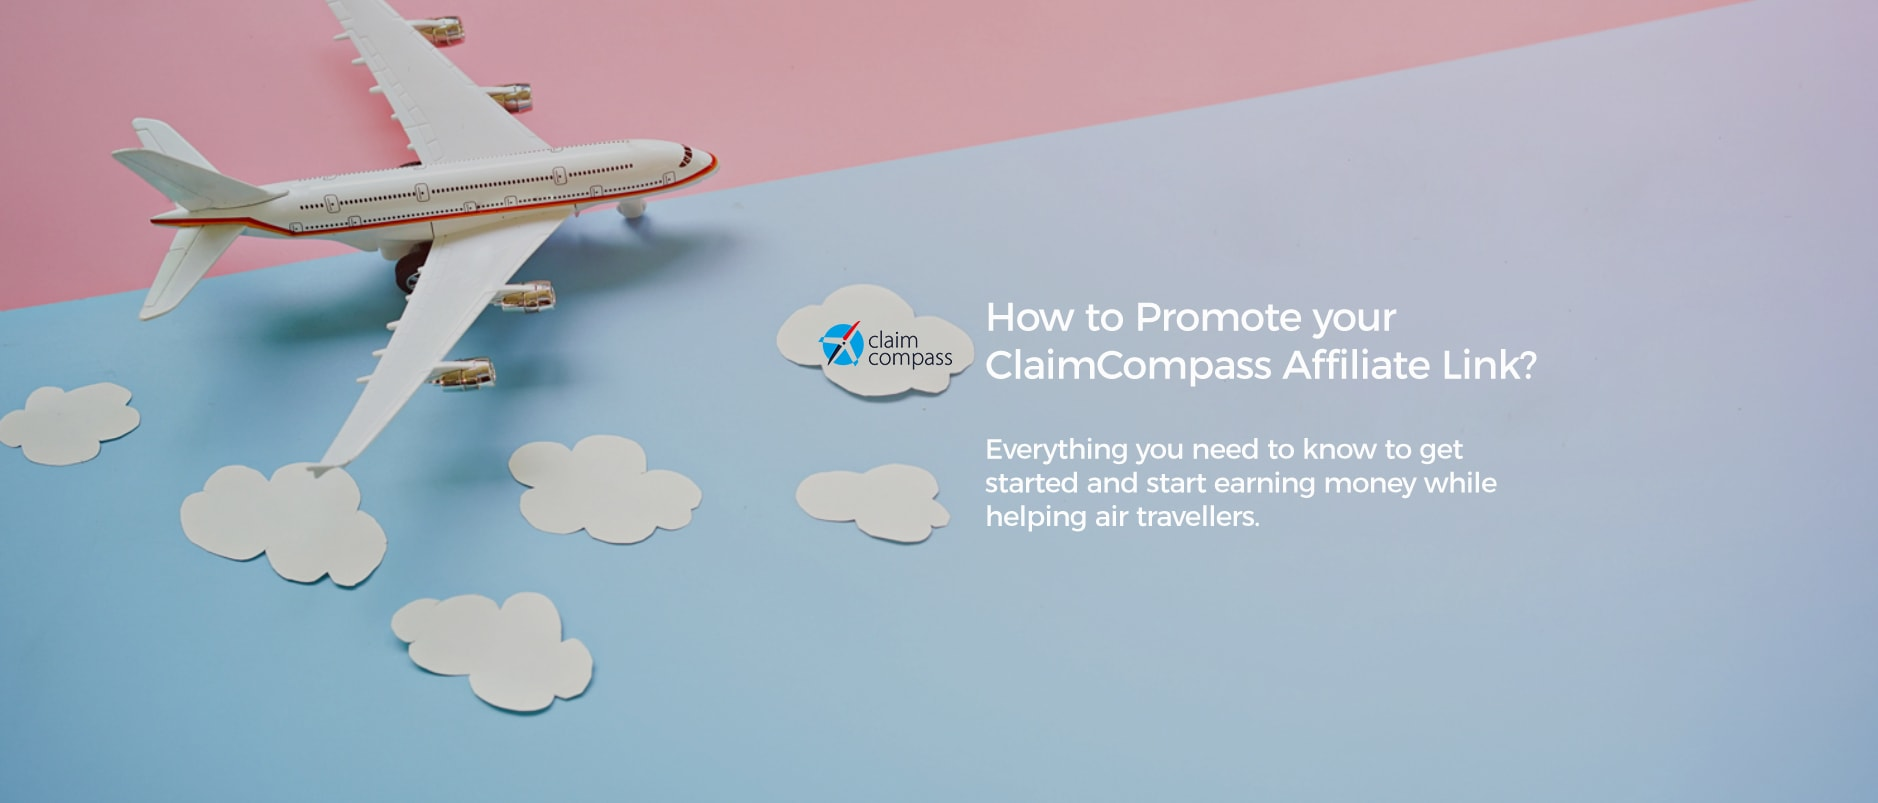 ClaimCompass Affiliate Program: How Can You Promote Your Affiliate Link?